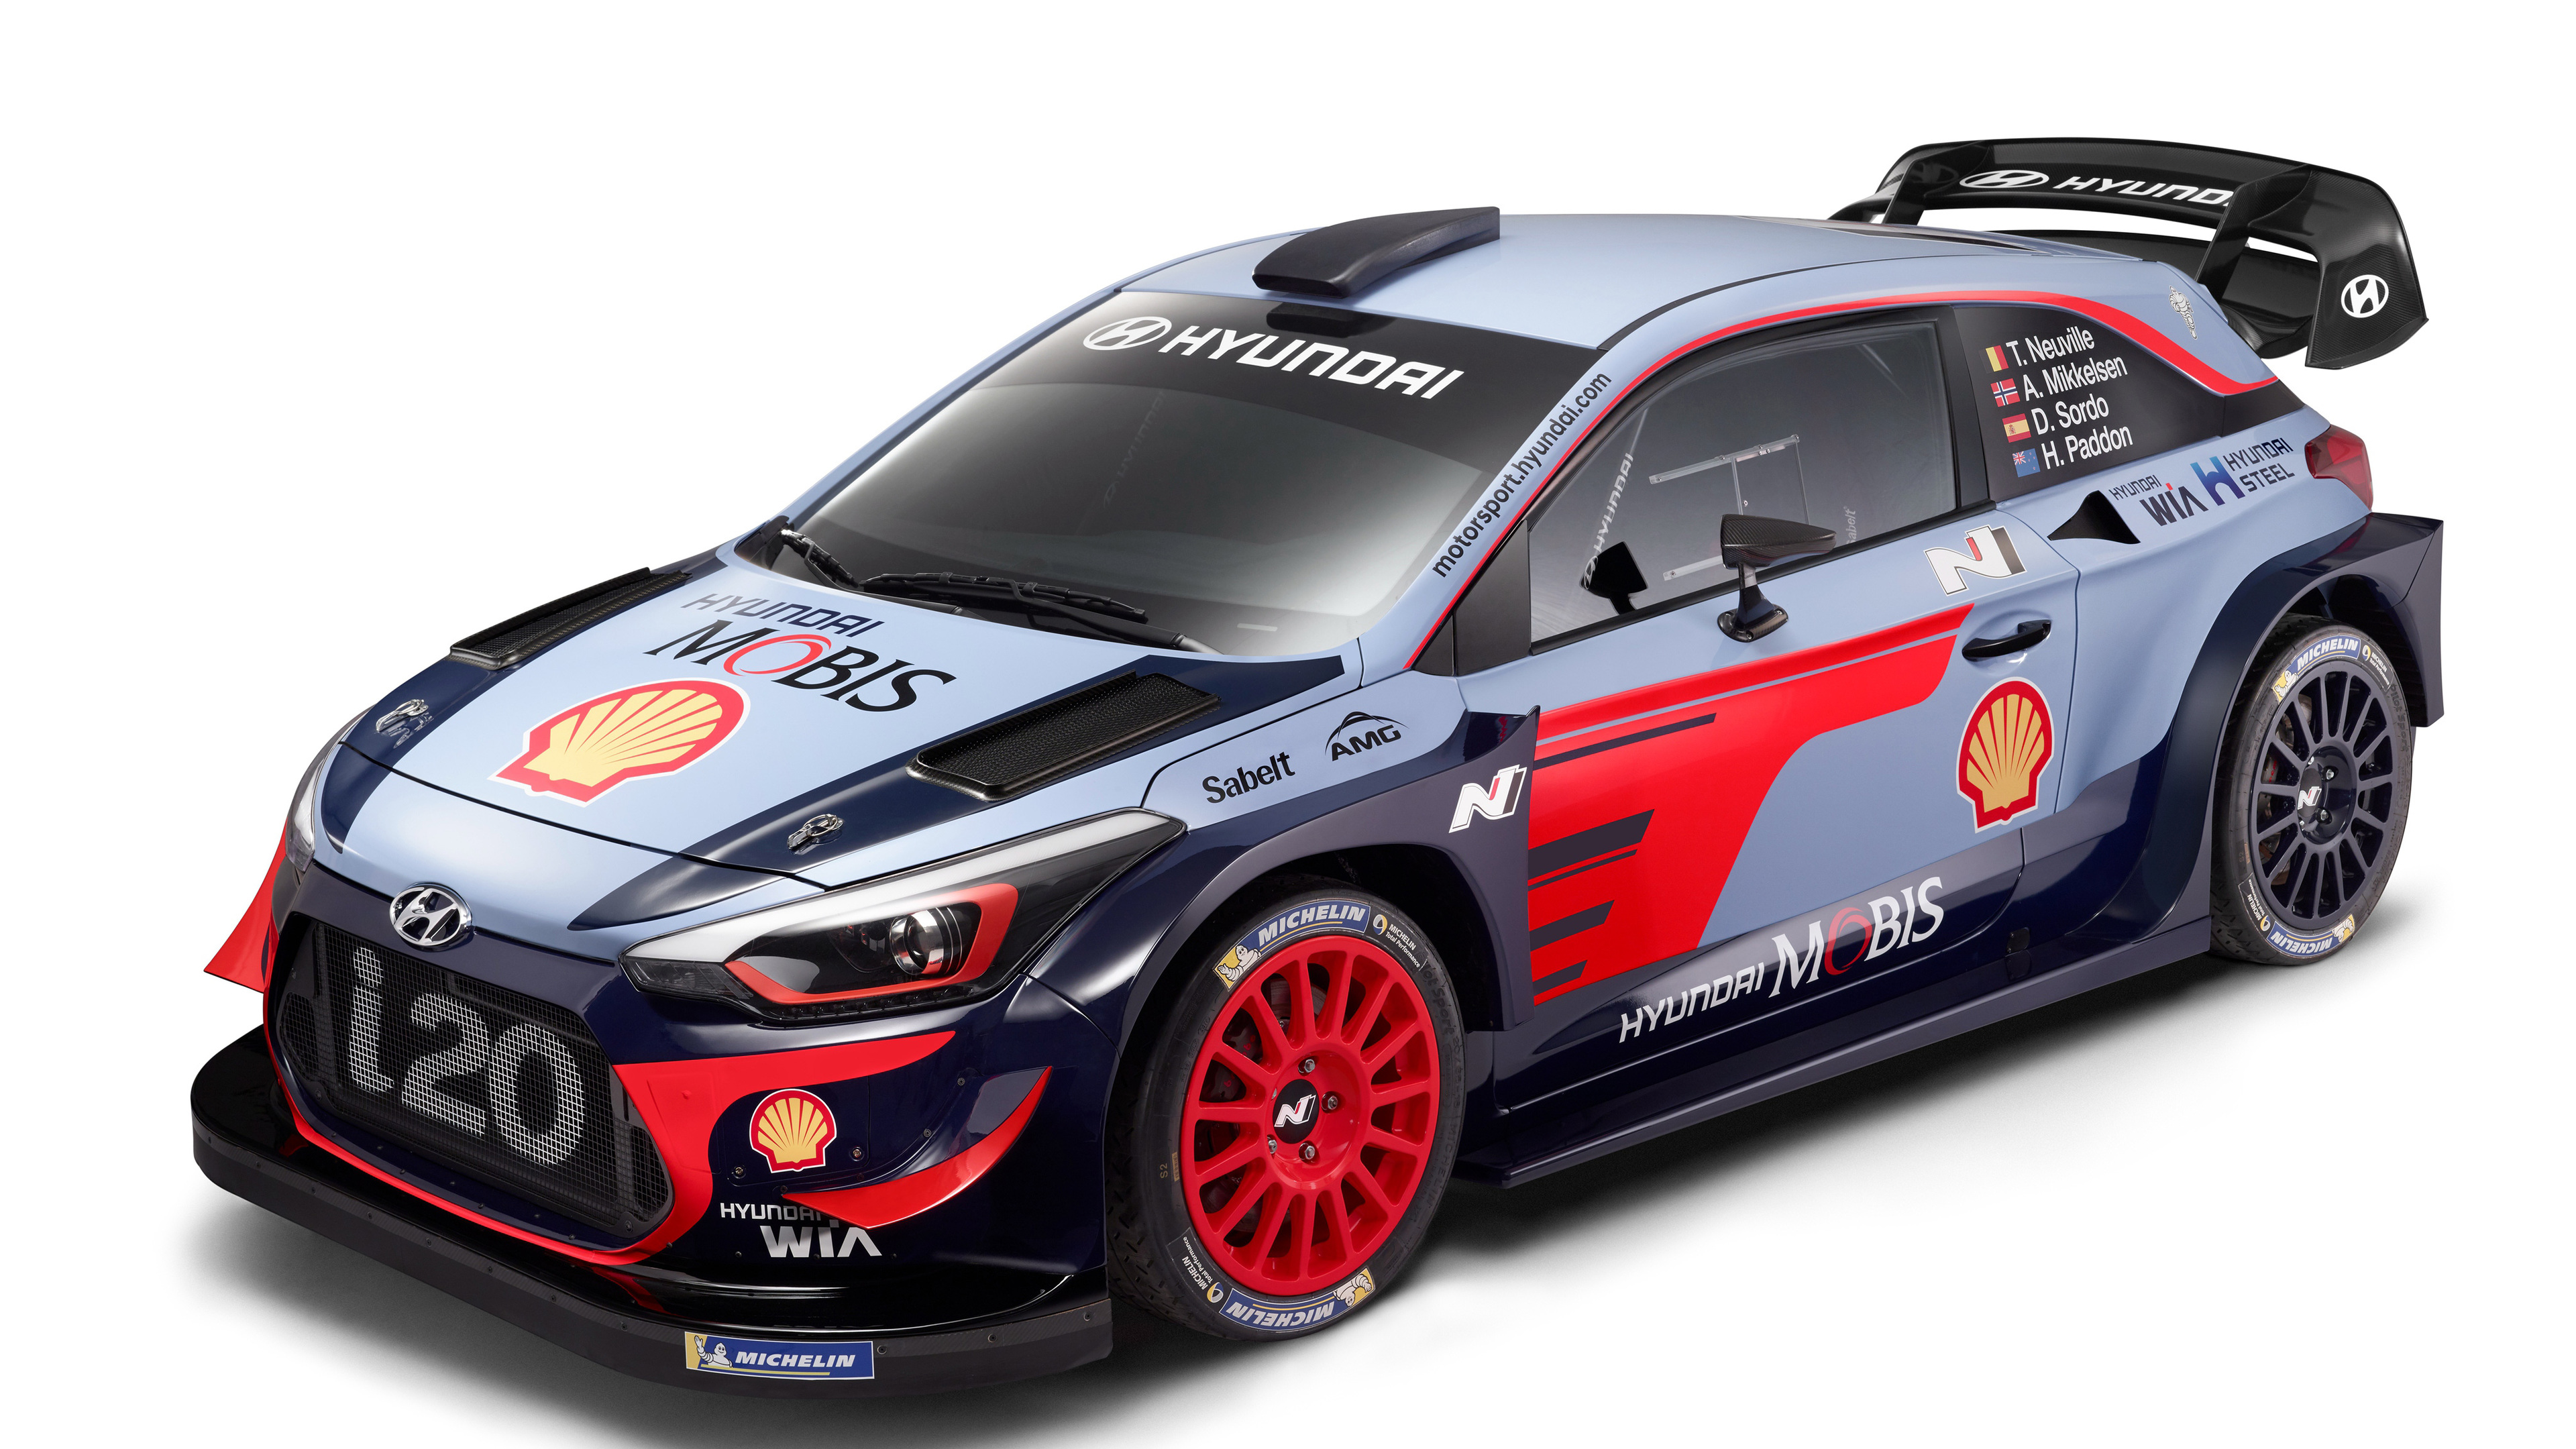 Wallpaper 4k Hyundai I20 Coupe Wrc 2018 2018 Cars Wallpapers 4k